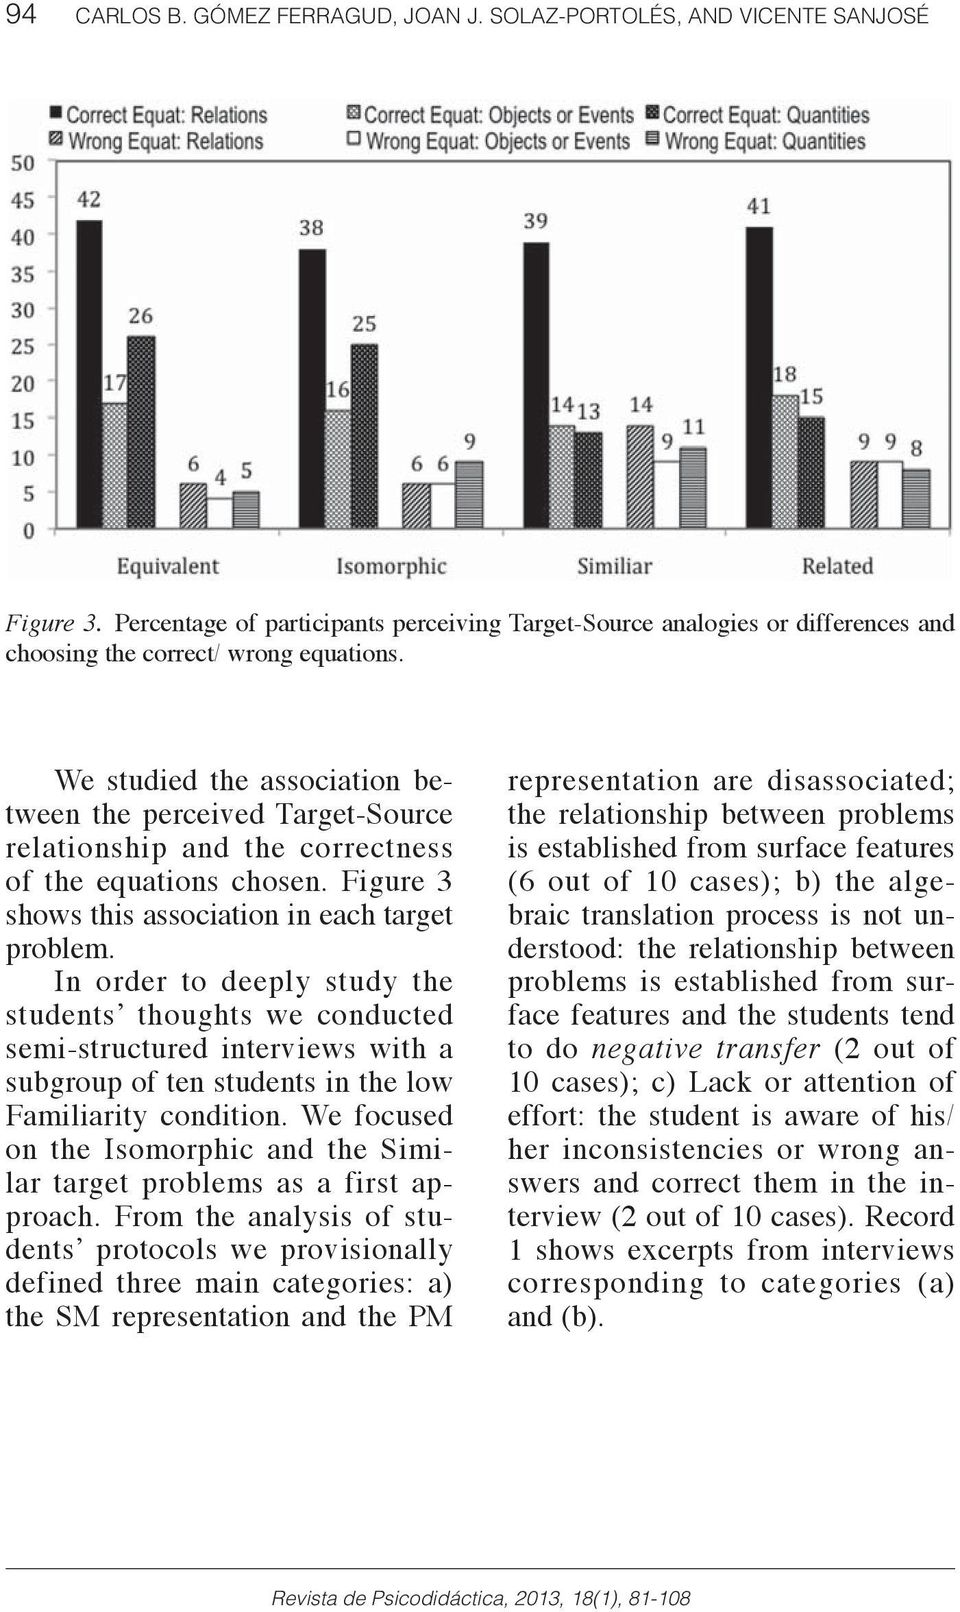 We studied the association between the perceived Target-Source relationship and the correctness of the equations chosen. Figure 3 shows this association in each target problem.